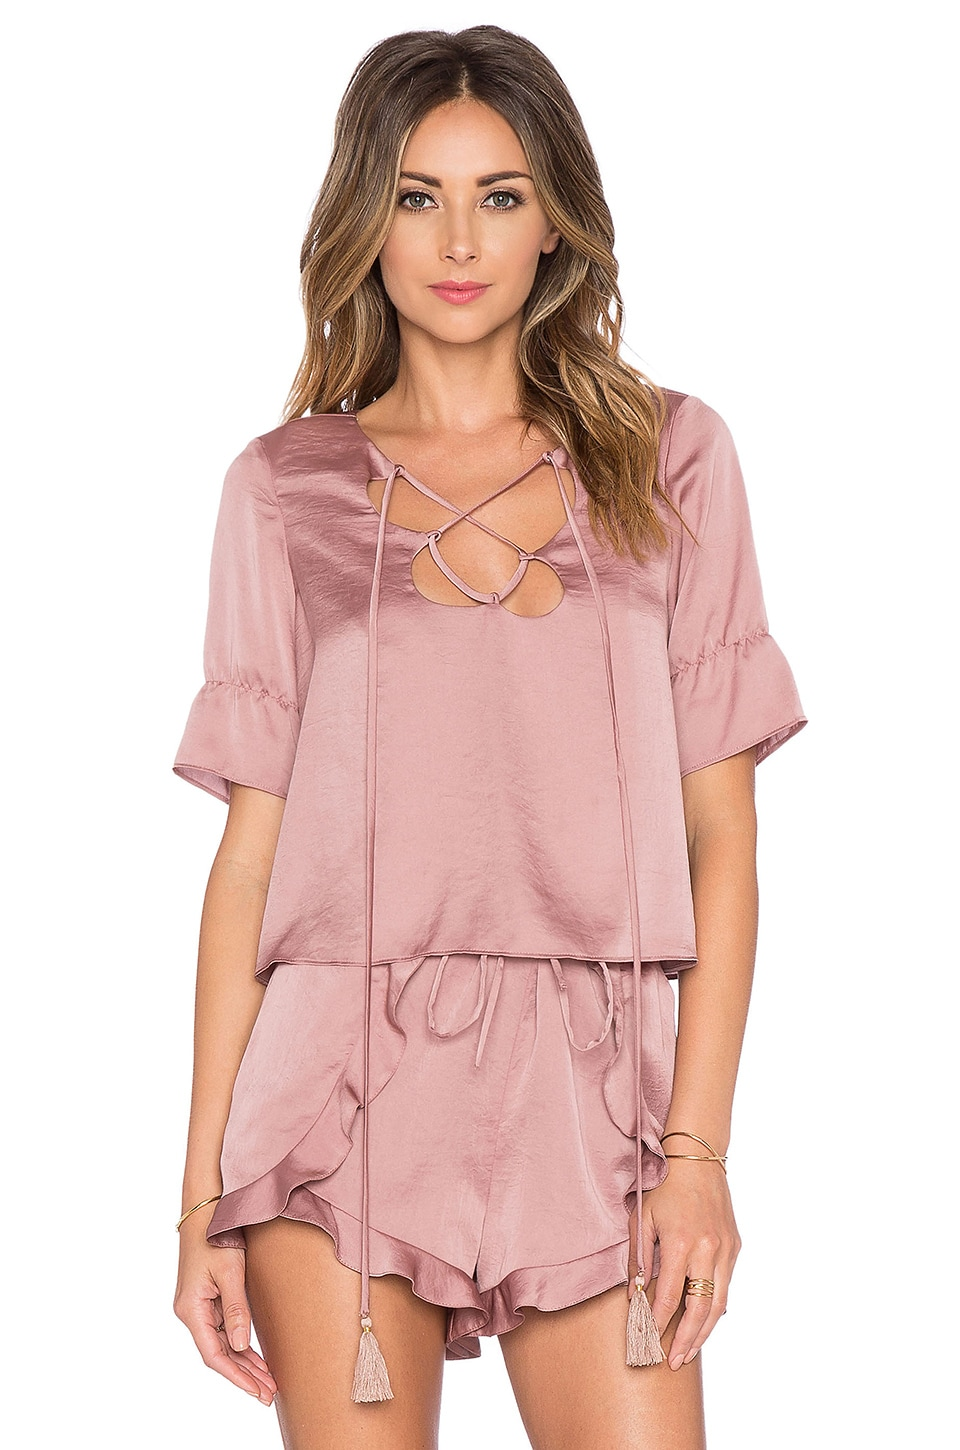 Tularosa Phoebe Top in Dusty Rose